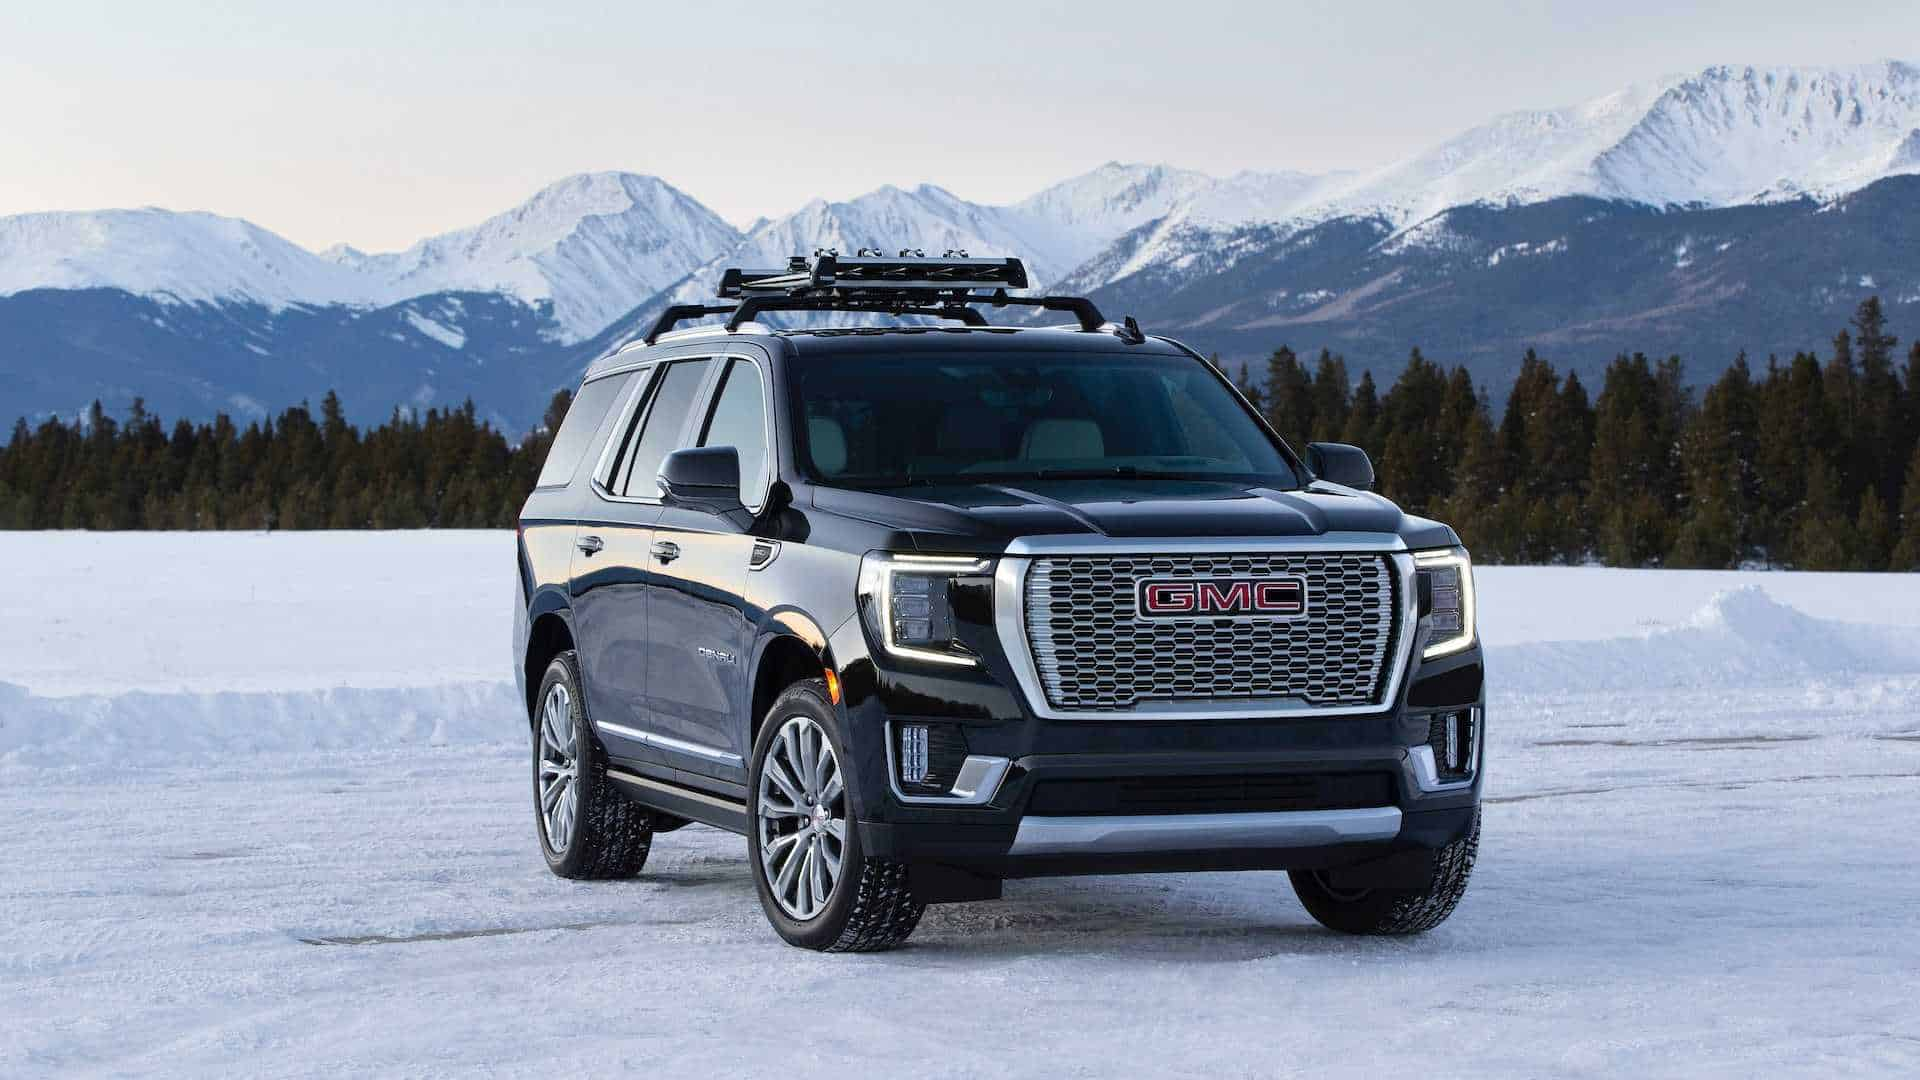 GMC Shows Off Their 2021 models